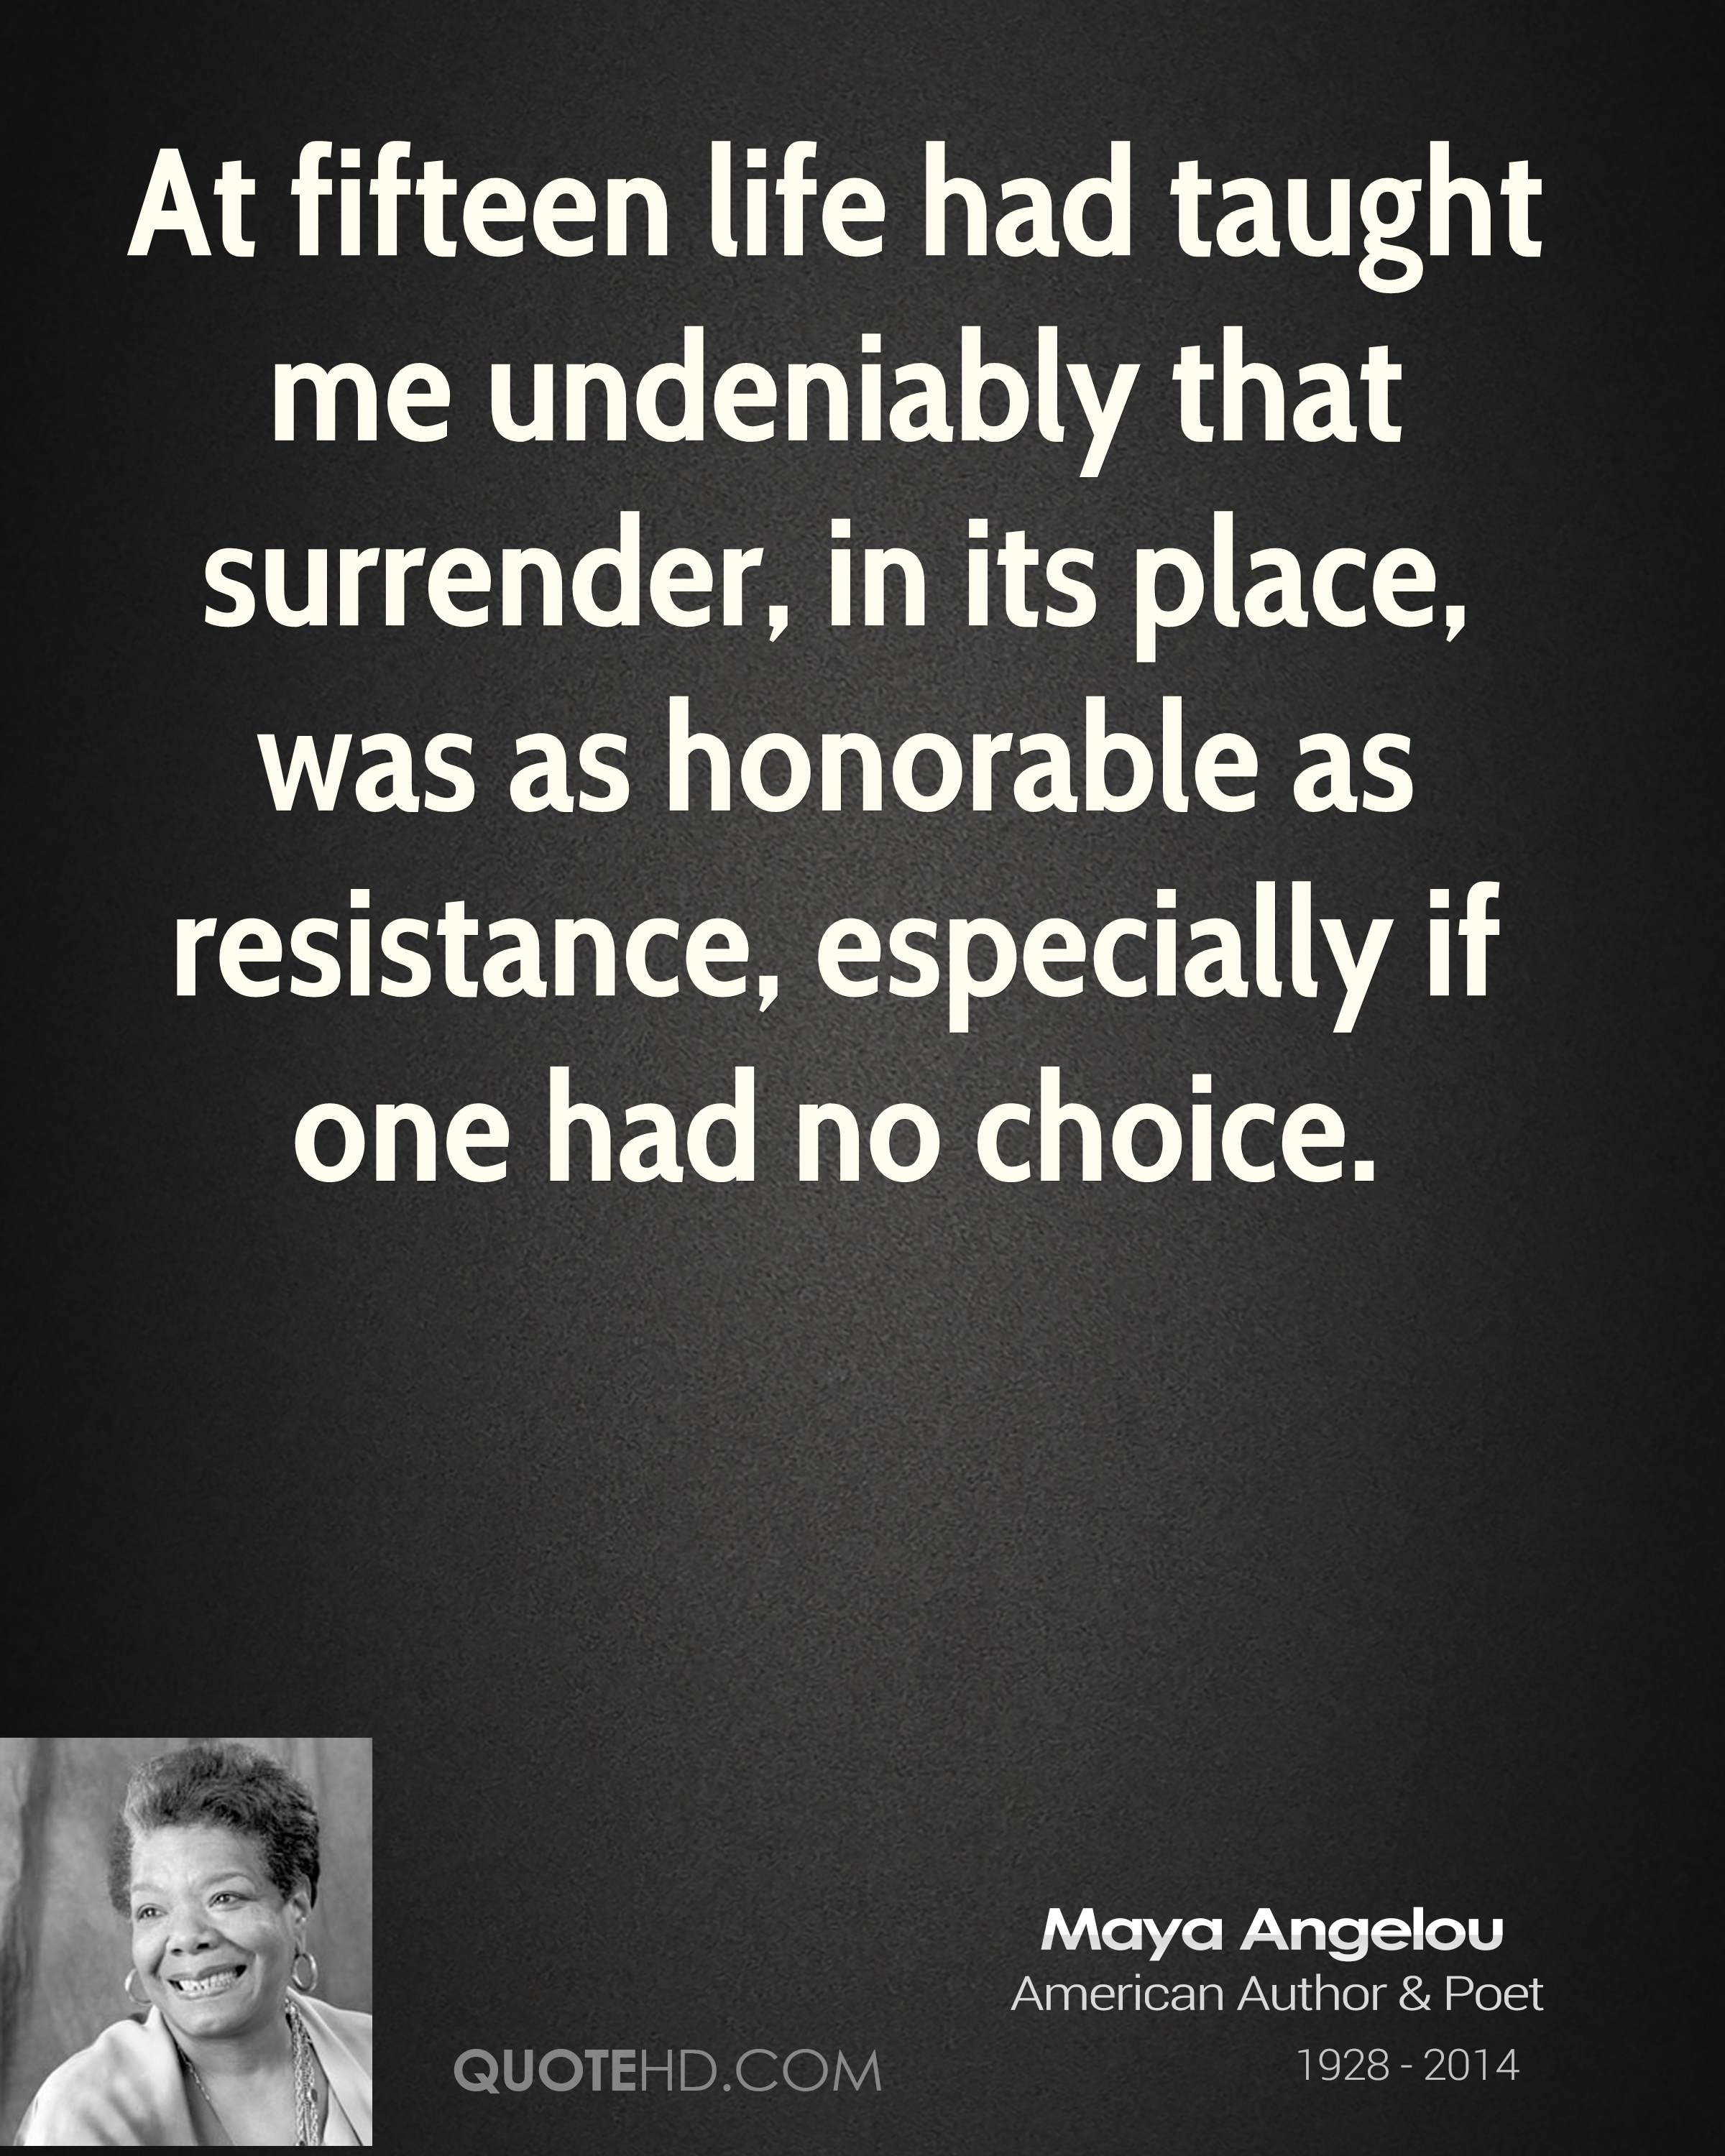 At fifteen life had taught me undeniably that surrender, in its place, was as honorable as resistance, especially if one had no choice.